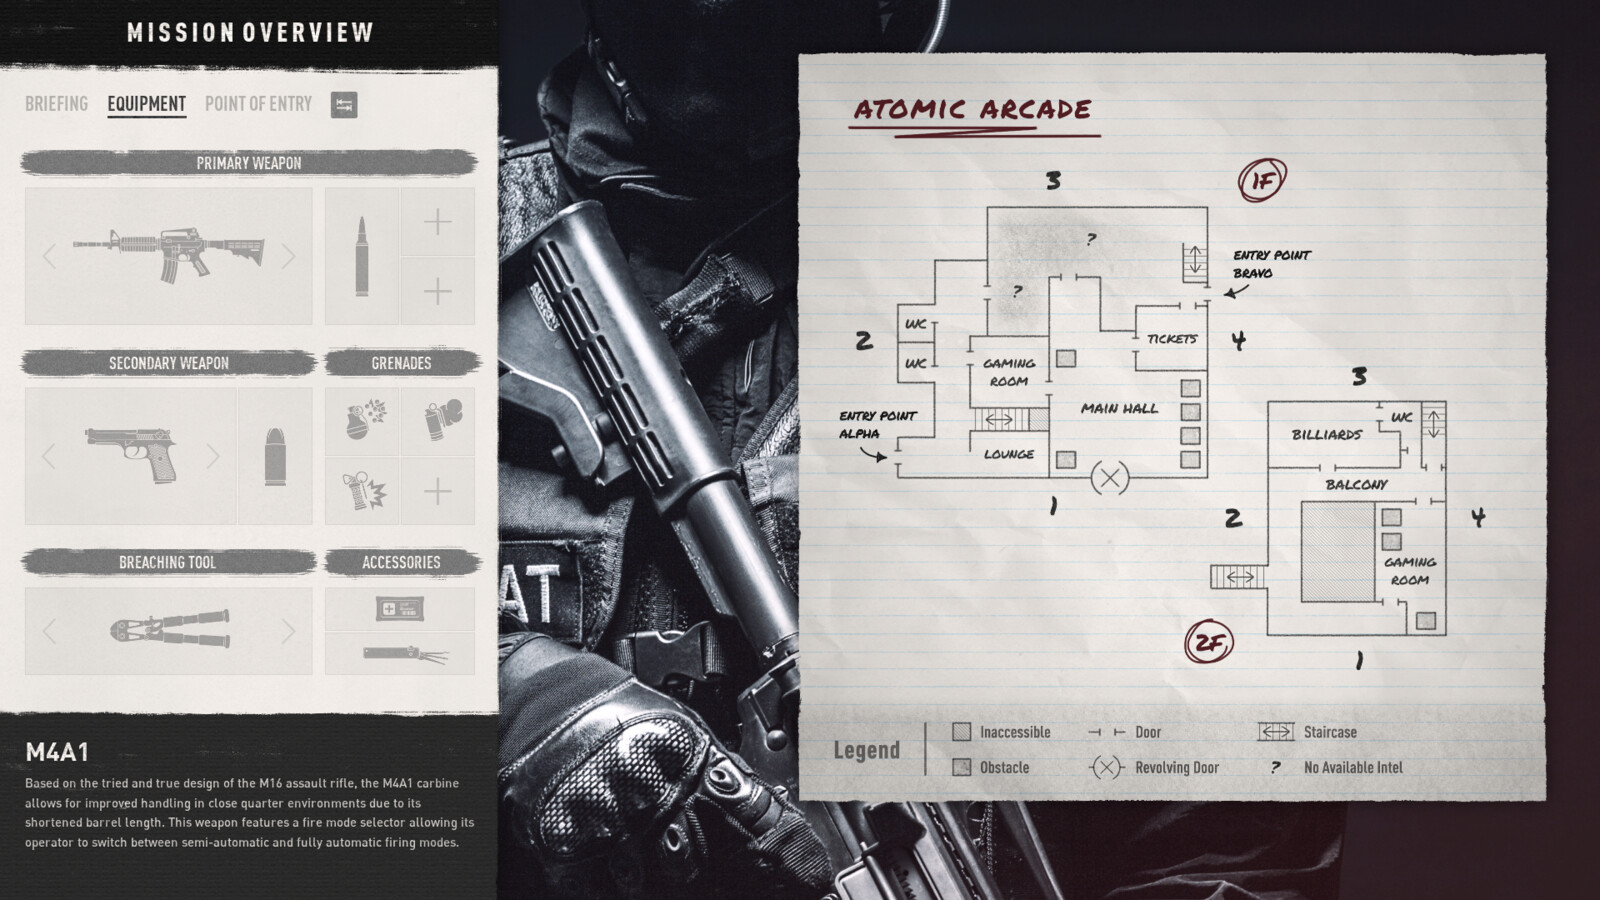 Mission Overview - Equipment